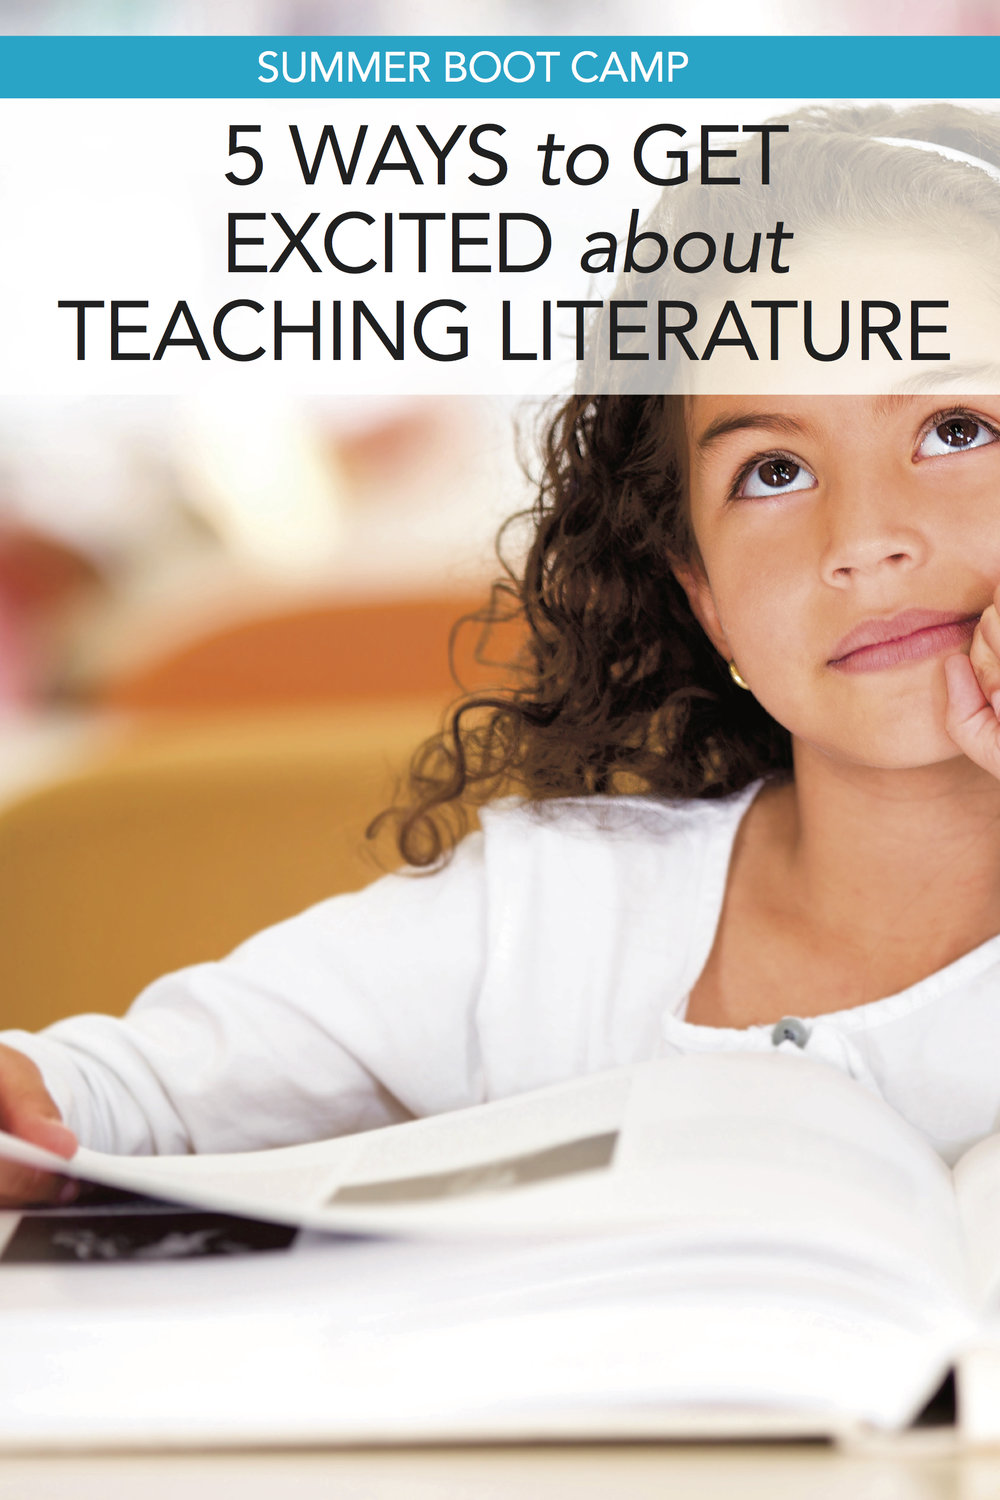 Summer Boot Camp: 5 Ways to Get Excited about Teaching Literature